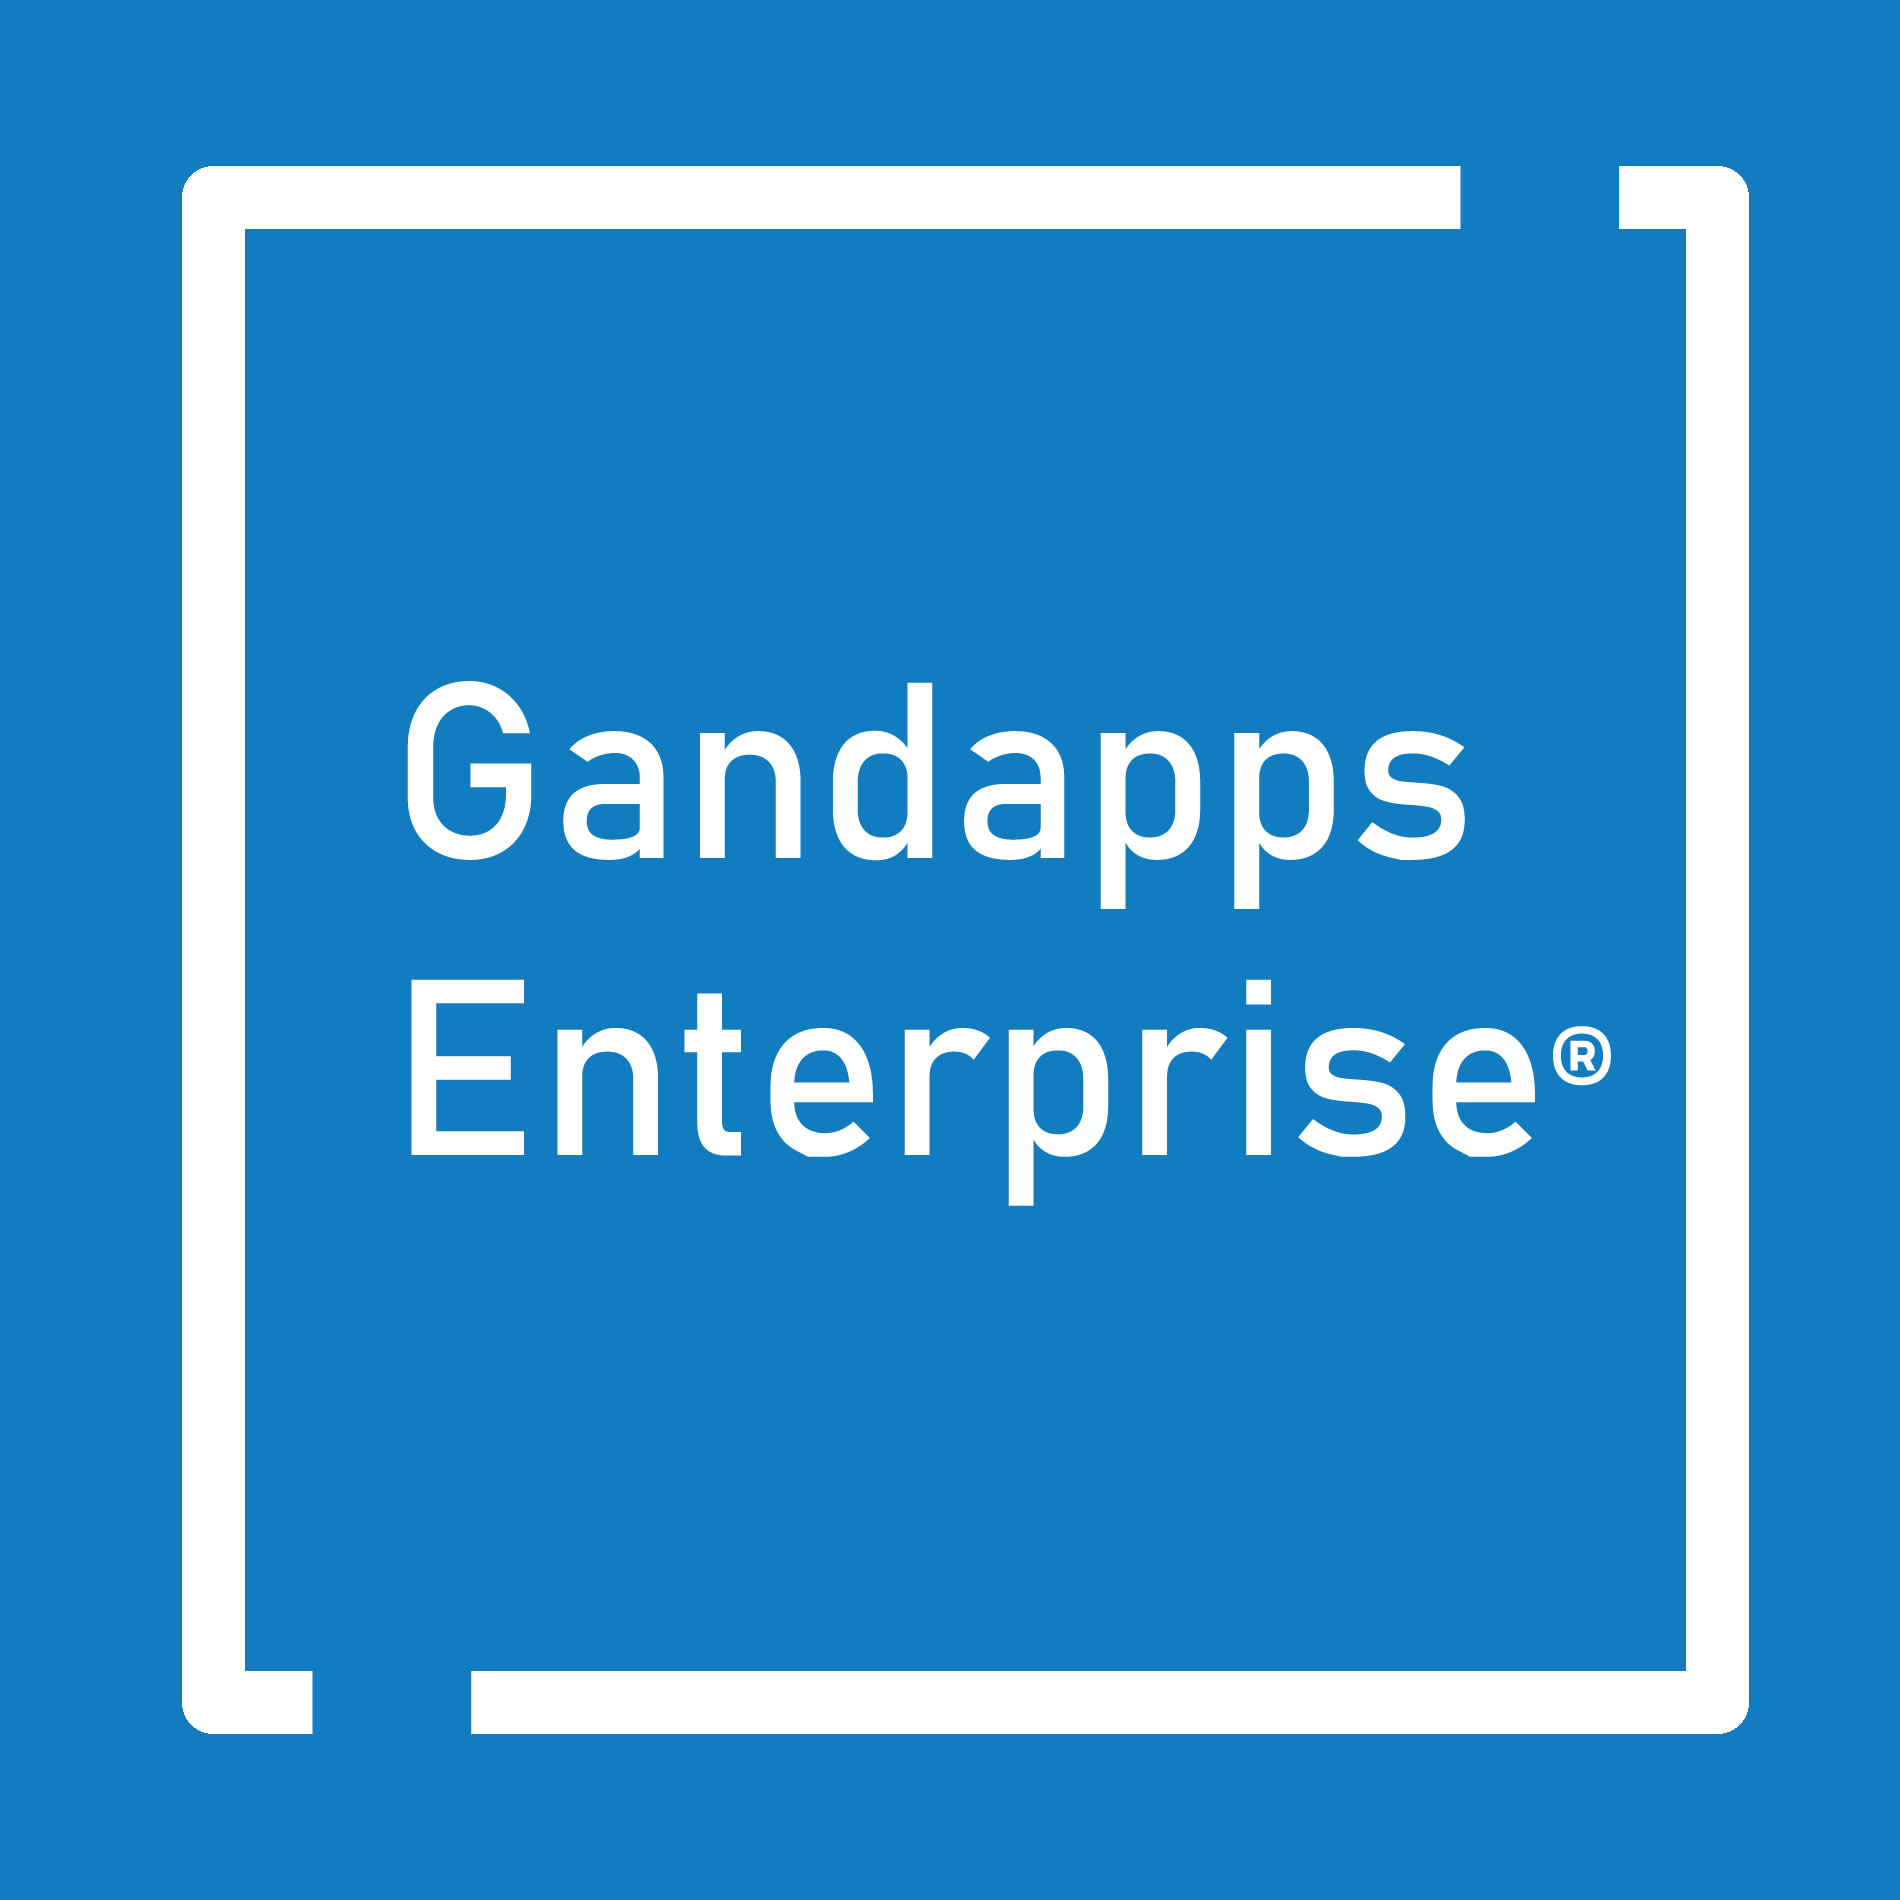 Gandapps Enterprise Management System